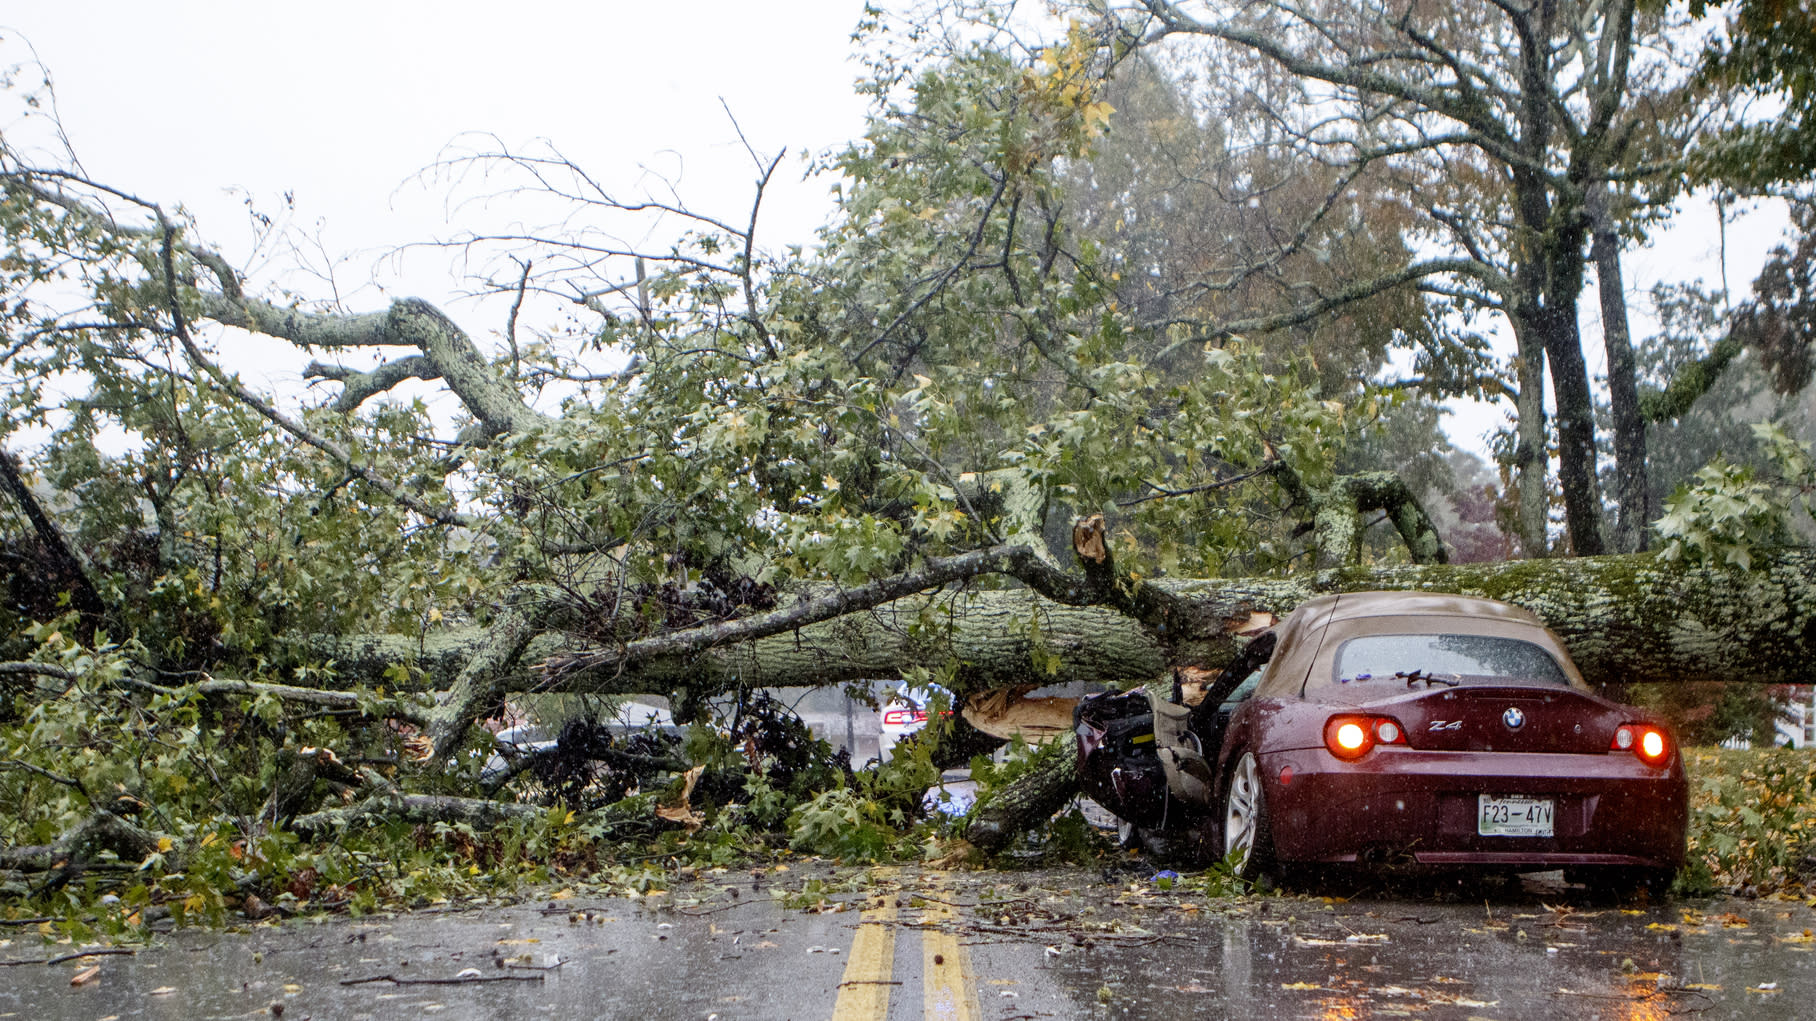 Staff photo by C.B. Schmelter / A downed tree is seen on top of a car along Belvoir Avenue on Thursday, Oct. 31, 2019 in Chattanooga, Tenn. An East Ridge police officer on the scene said that the driver of the crushed vehicle was perfectly OK after the accident and was not taken to the hospital. The fallen tree blocked traffic and knocked electricity out for a large part of East Ridge, Tenn. (C.B. Schmelter/Chattanooga Times Free Press via AP)